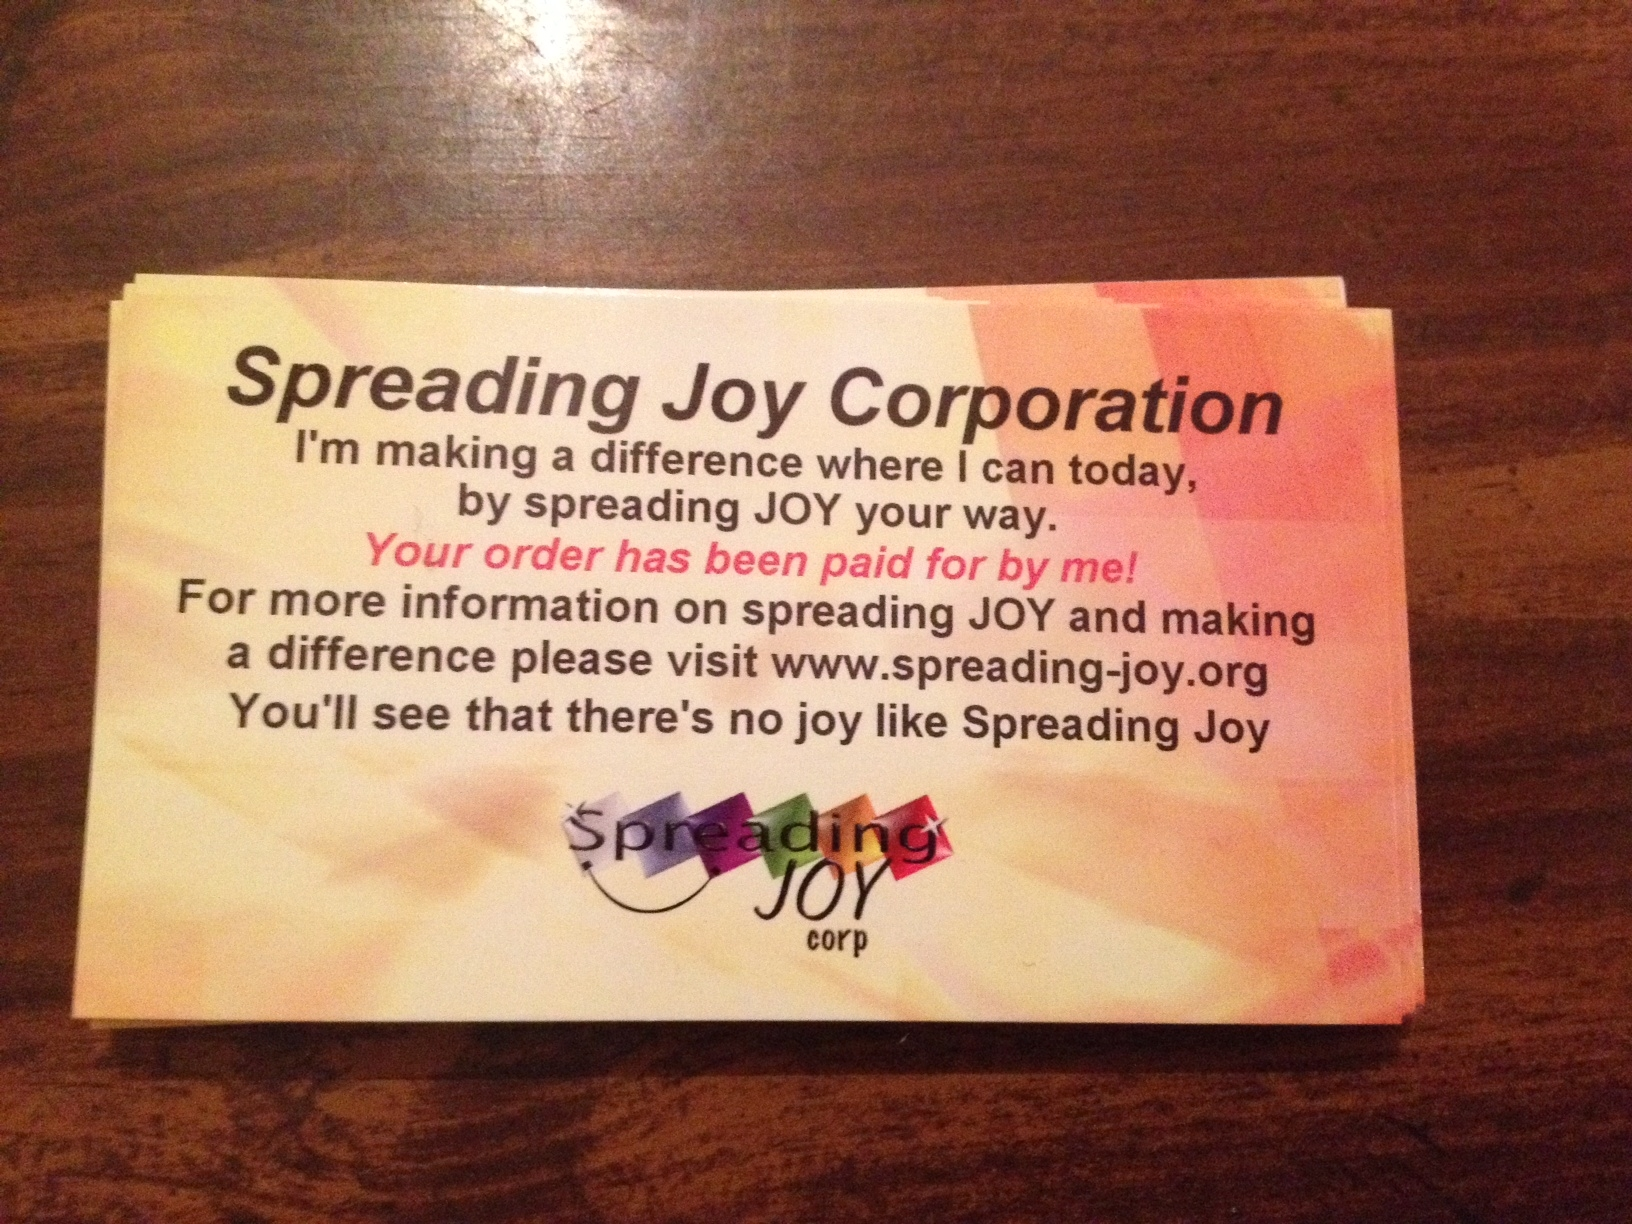 Secretly Pay for a meal or coffee! Have Fun Spreading JOY. Get These Cards FREE!